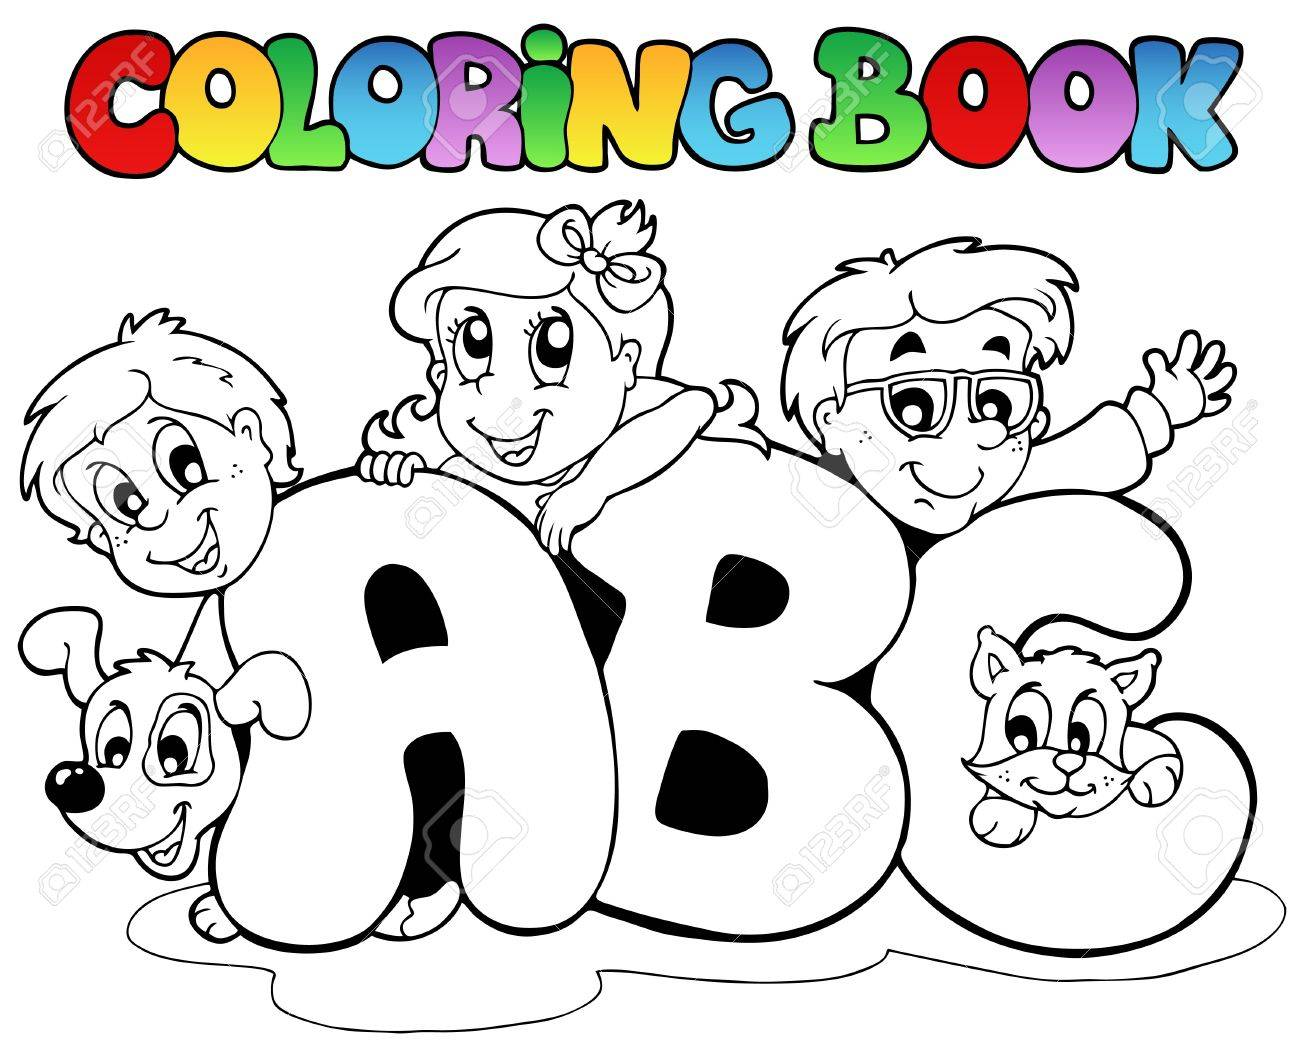 Coloring Book School ABC Letters Royalty Free Cliparts, Vectors ...